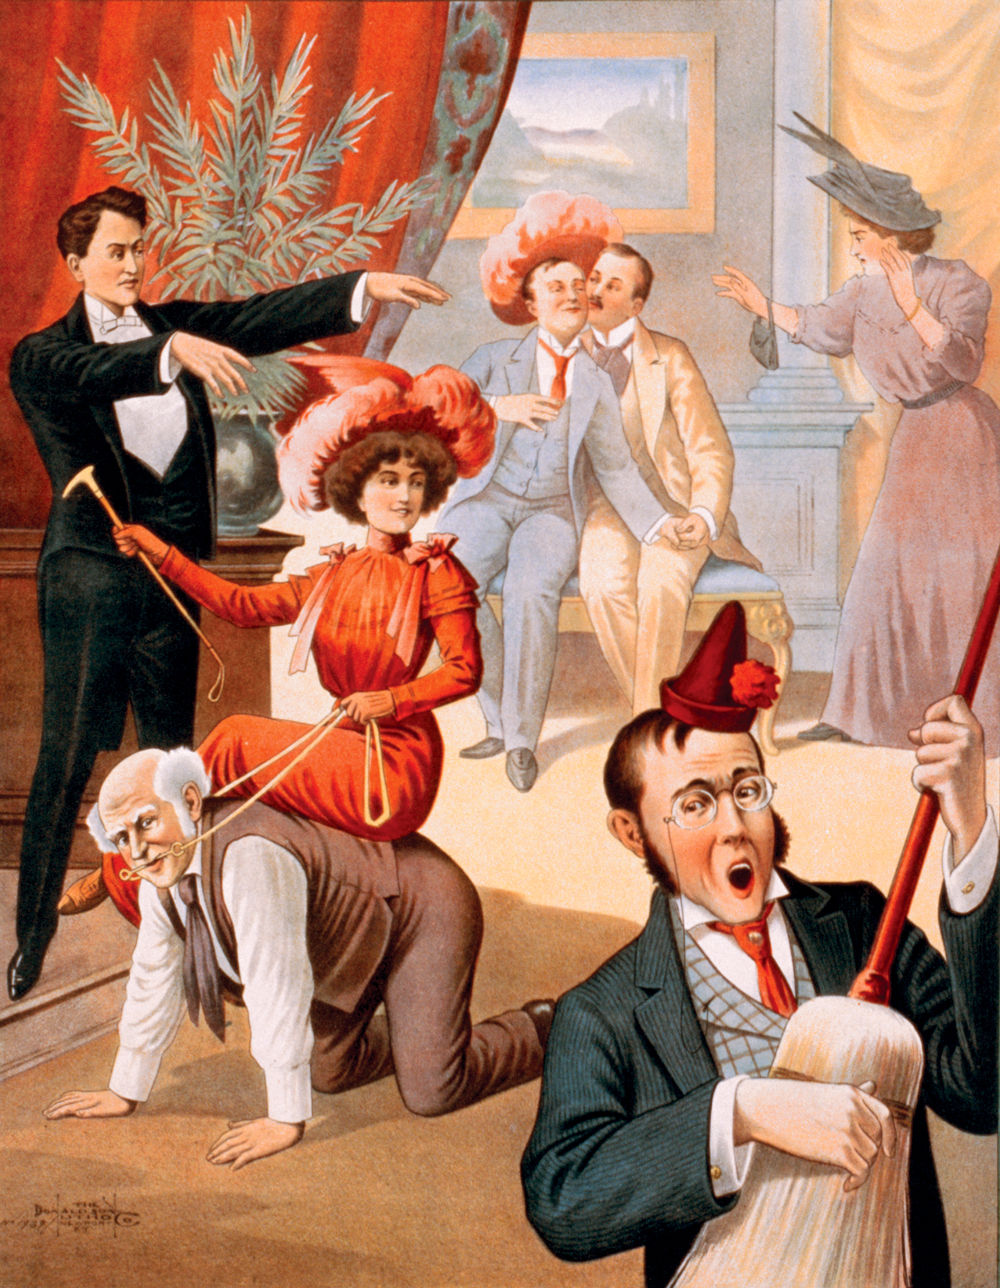 A hypnotist makes a mockery of party-goers as they revel in delight. A woman rides a man like a horse as he crawls on all fours, while a man wearing a party hat plays a broom as if it was a guitar.